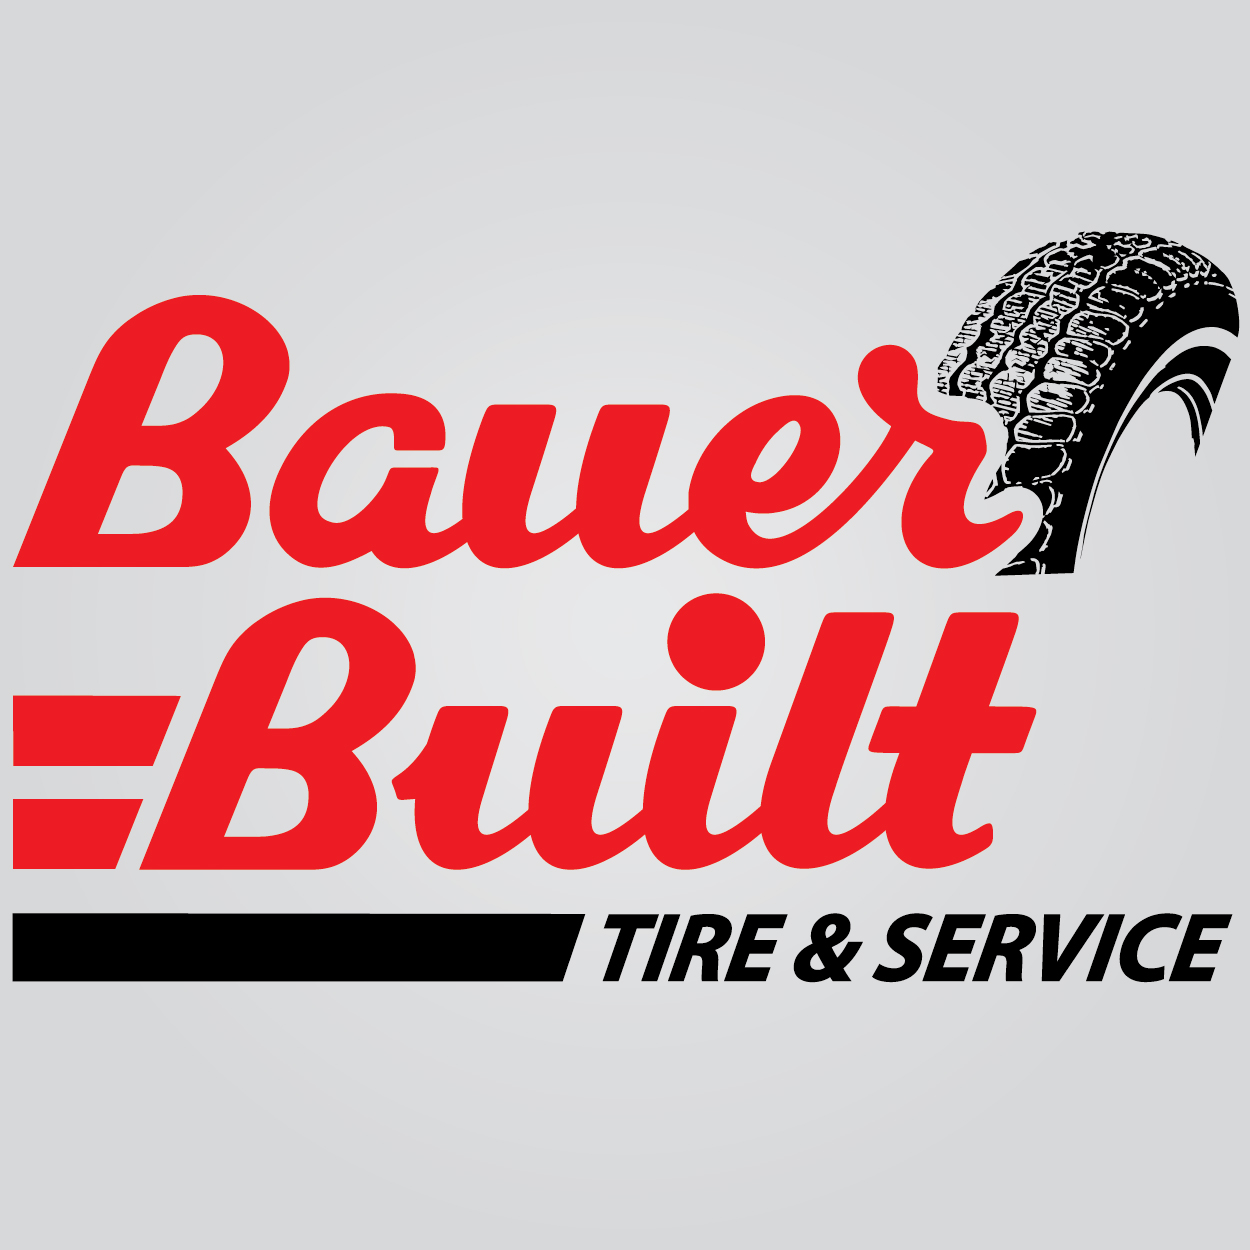 Bauer Built Tire & Service in Durand, WI. Tire retreading.